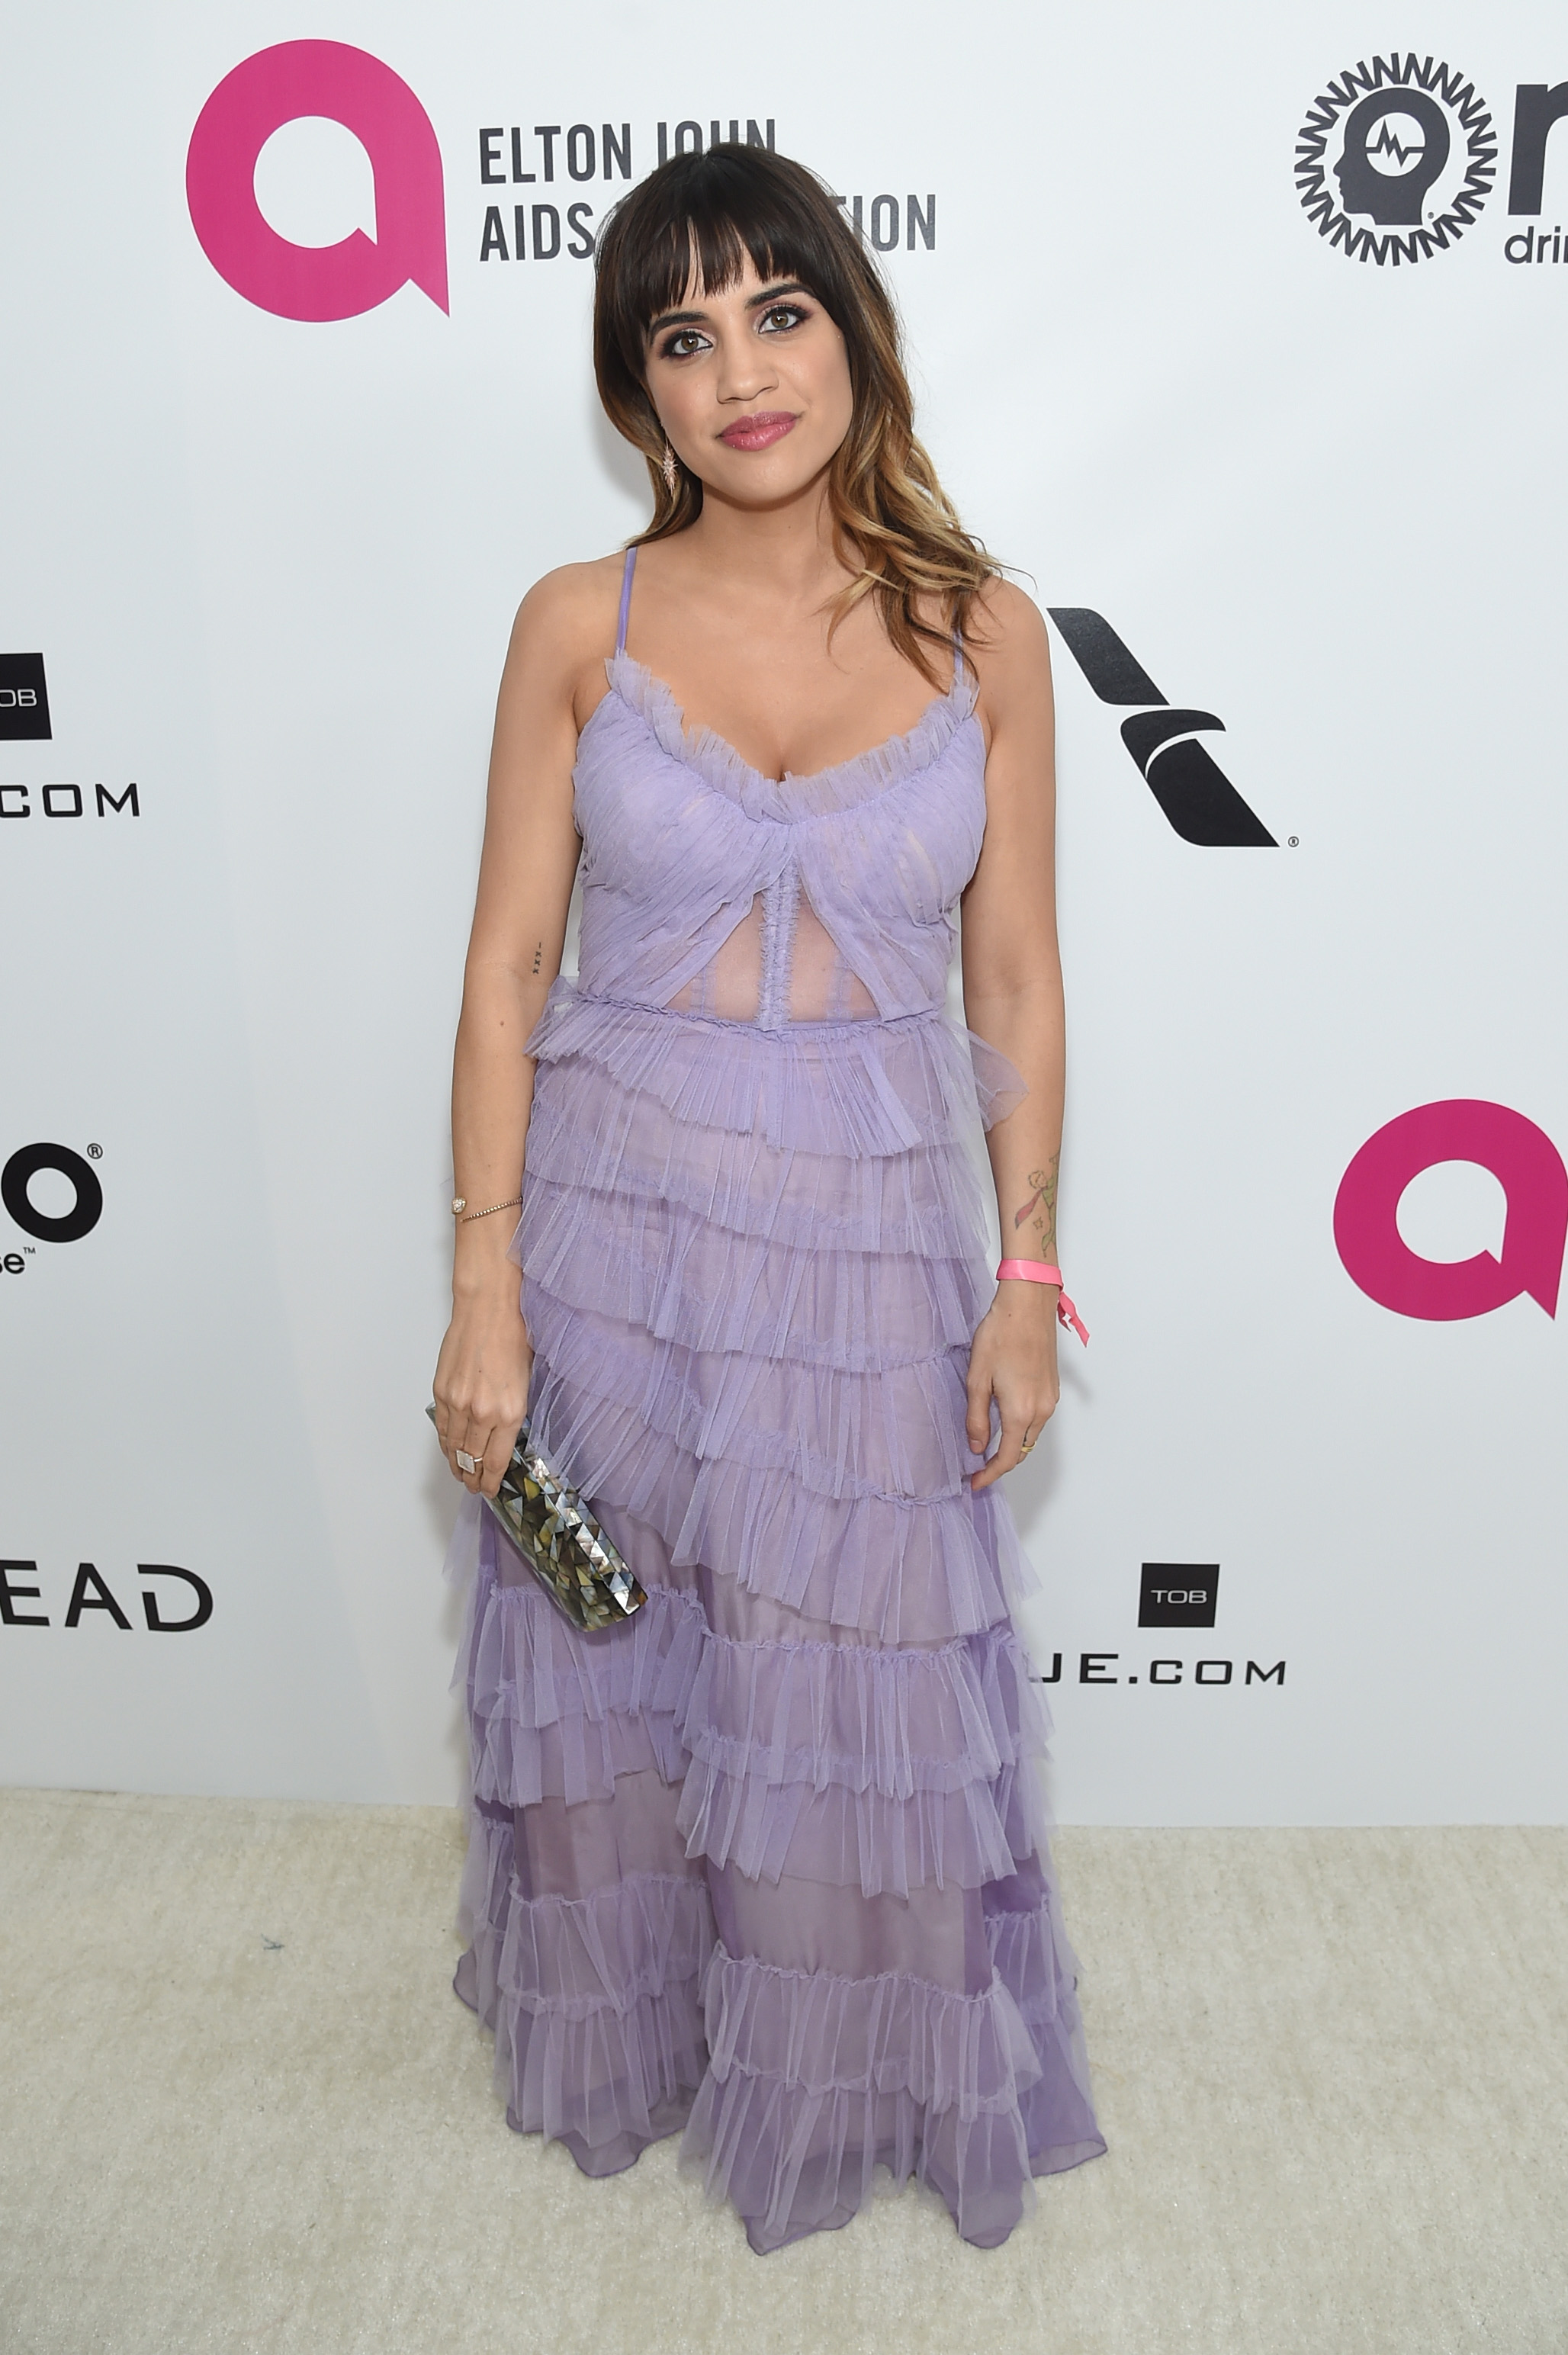 Natalie Morales attends the 27th annual Elton John AIDS Foundation Academy Awards Viewing Party sponsored by IMDb and Neuro Drinks celebrating EJAF and the 91st Academy Awards on February 24, 2019 in West Hollywood, California. (getty images)